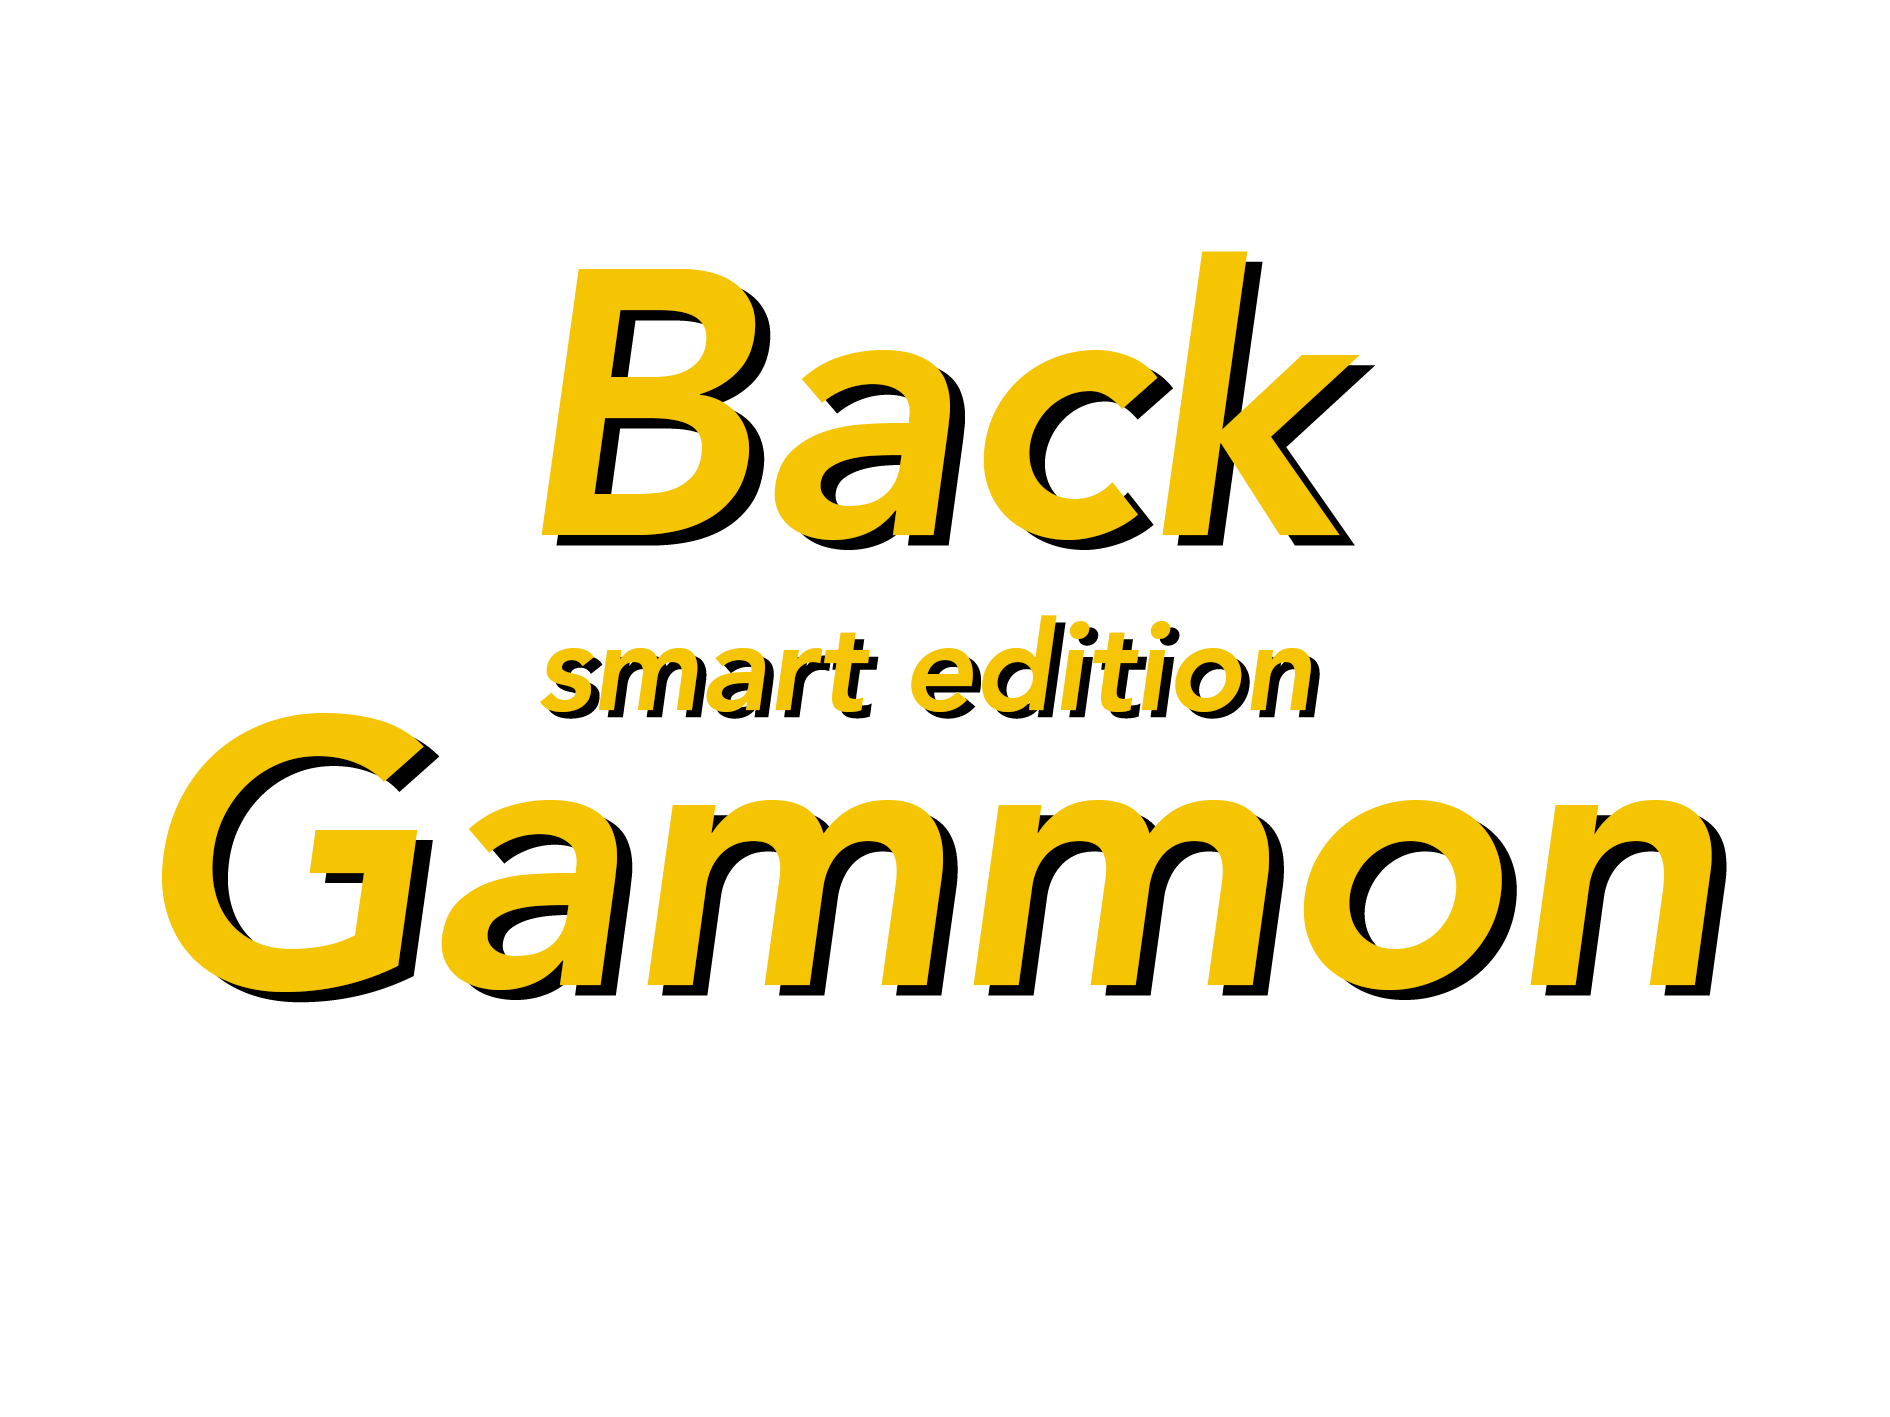 Back Gammon Logo